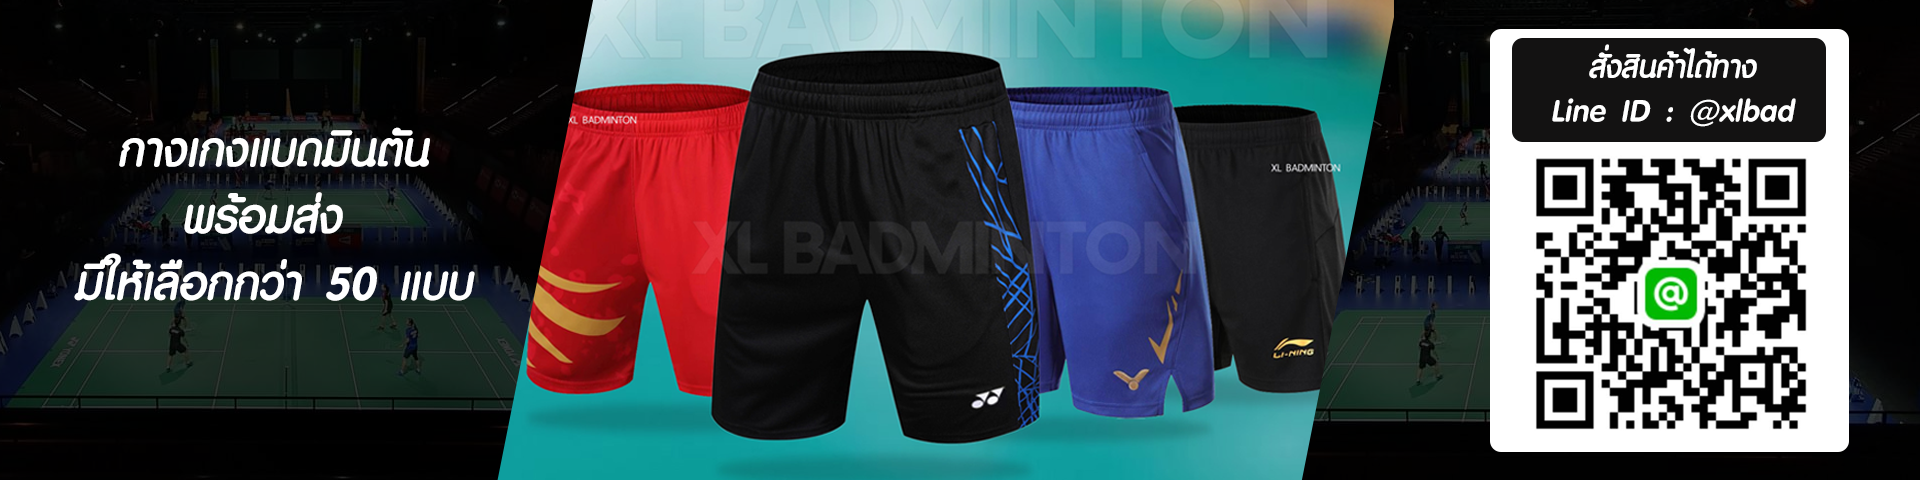 XL BADMINTON